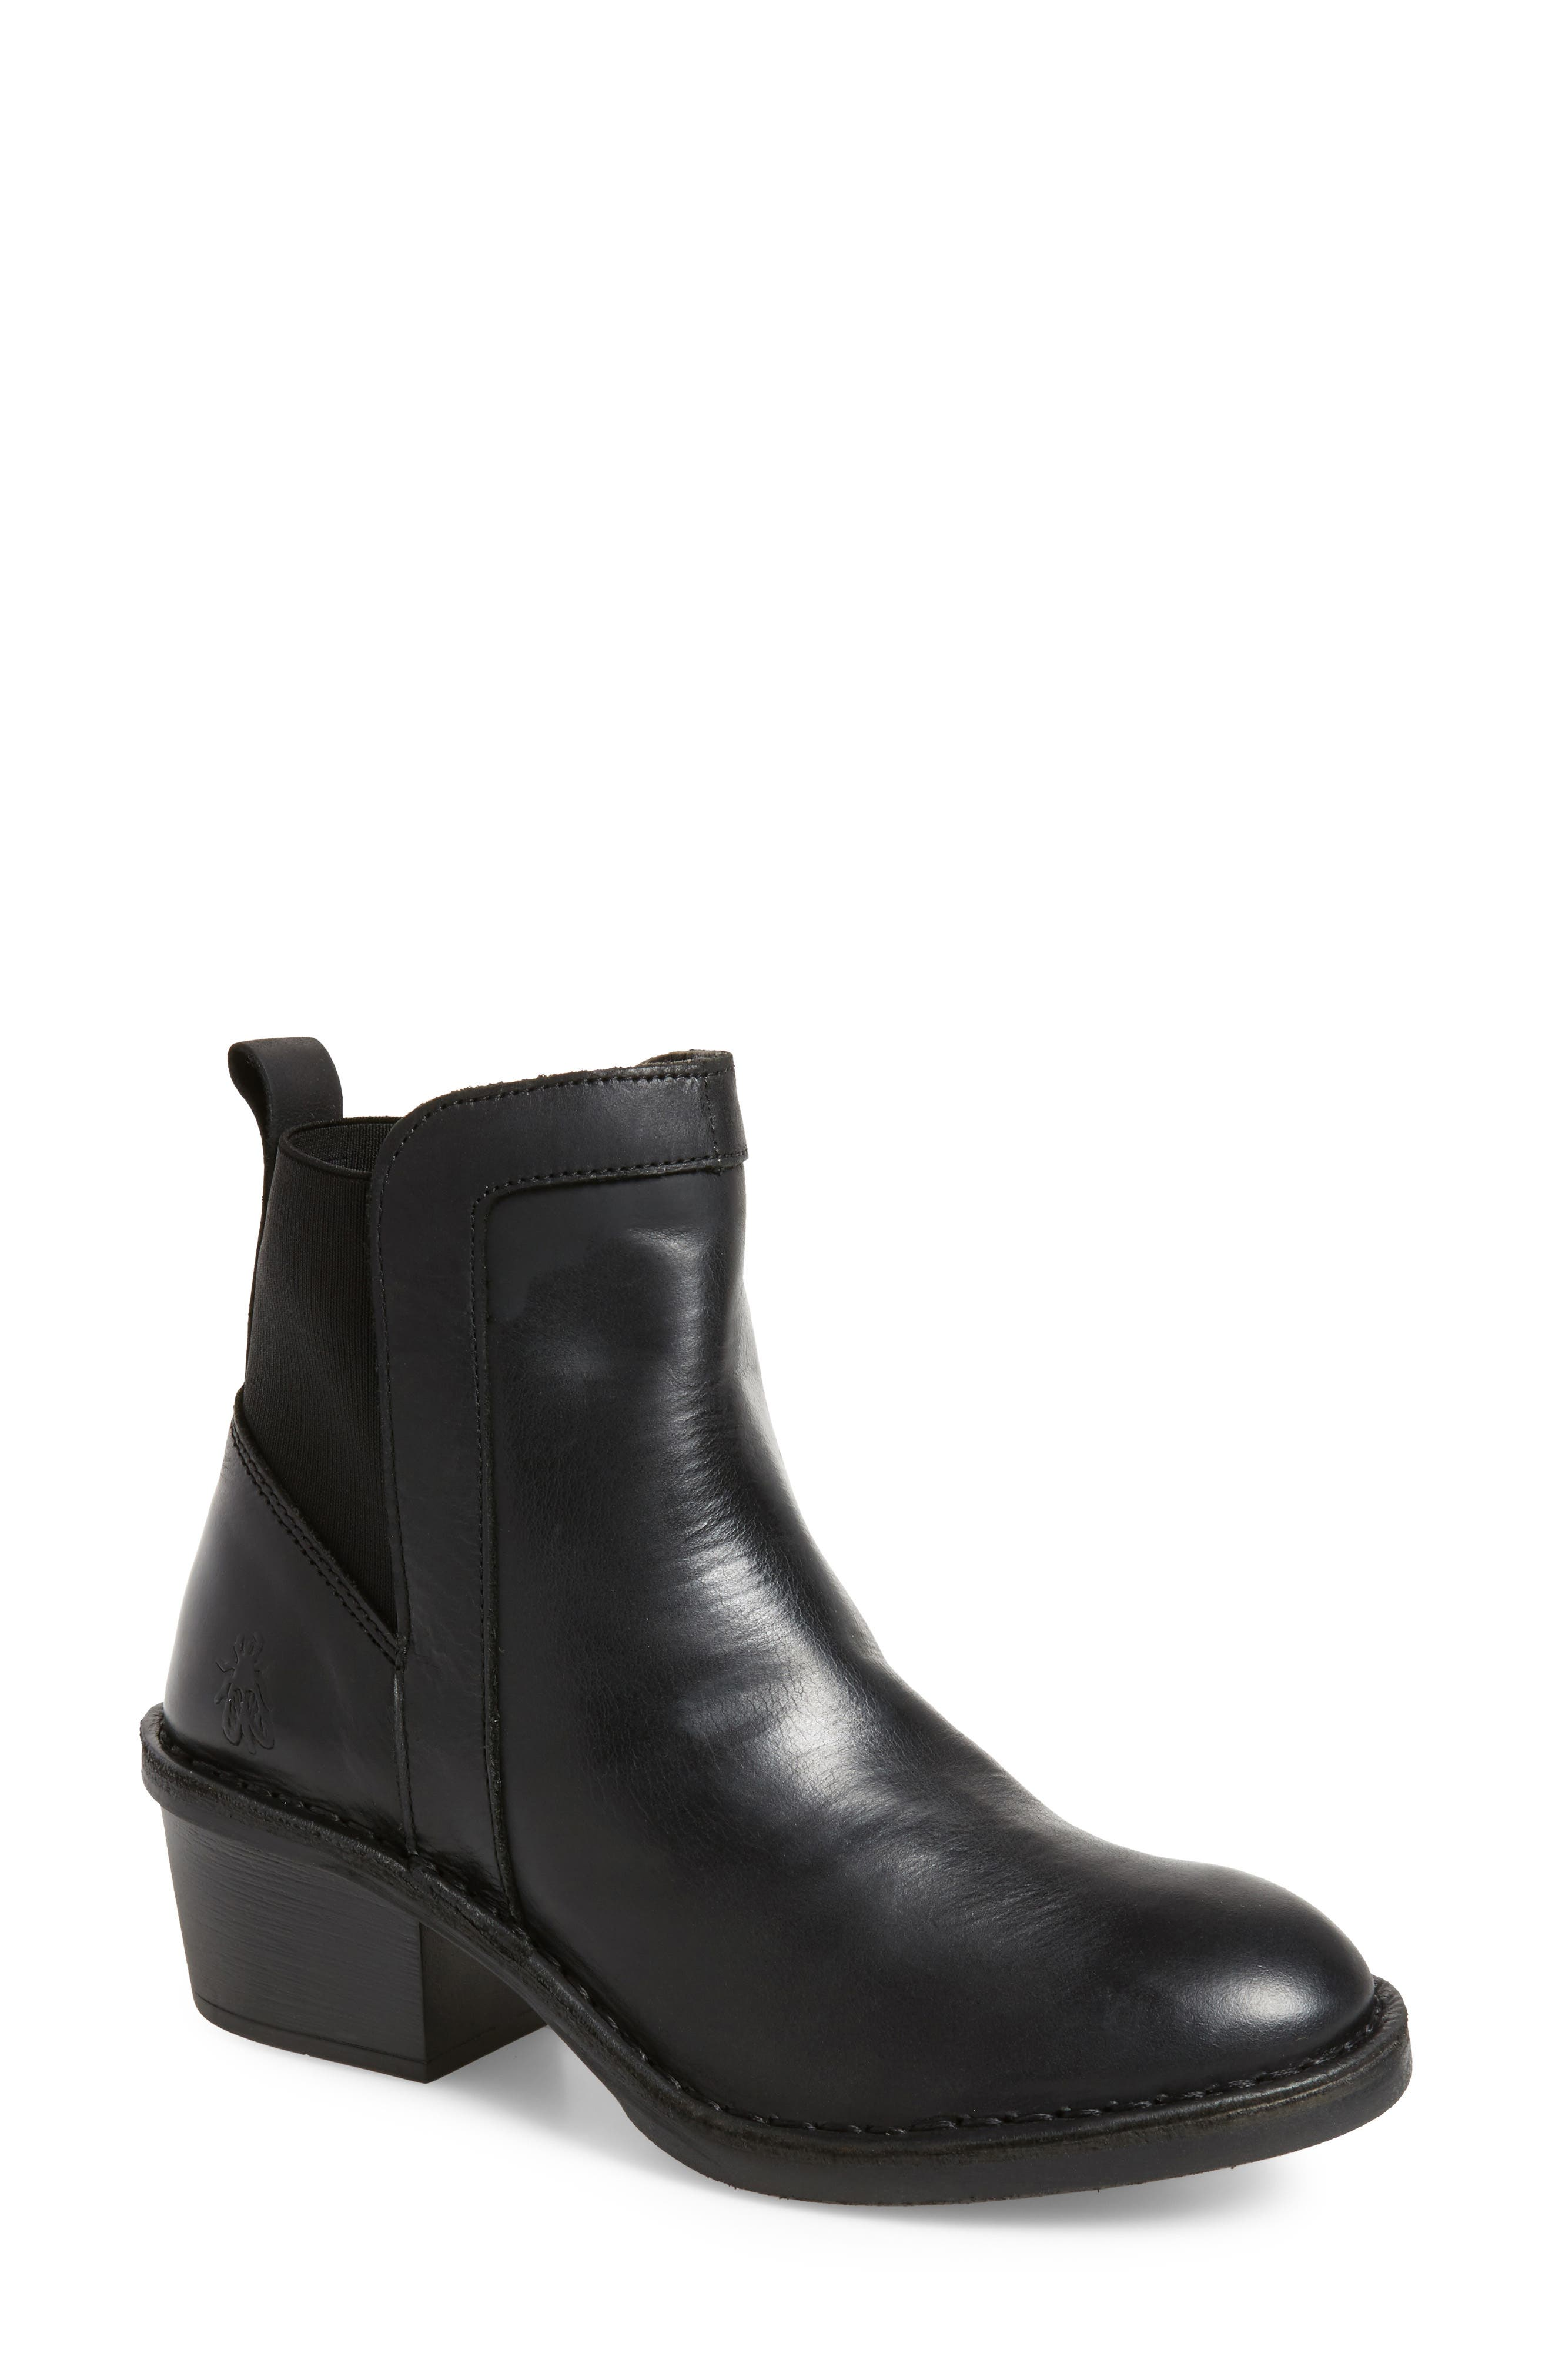 Alternate Image 1 Selected - Fly London Dicy Bootie (Women)